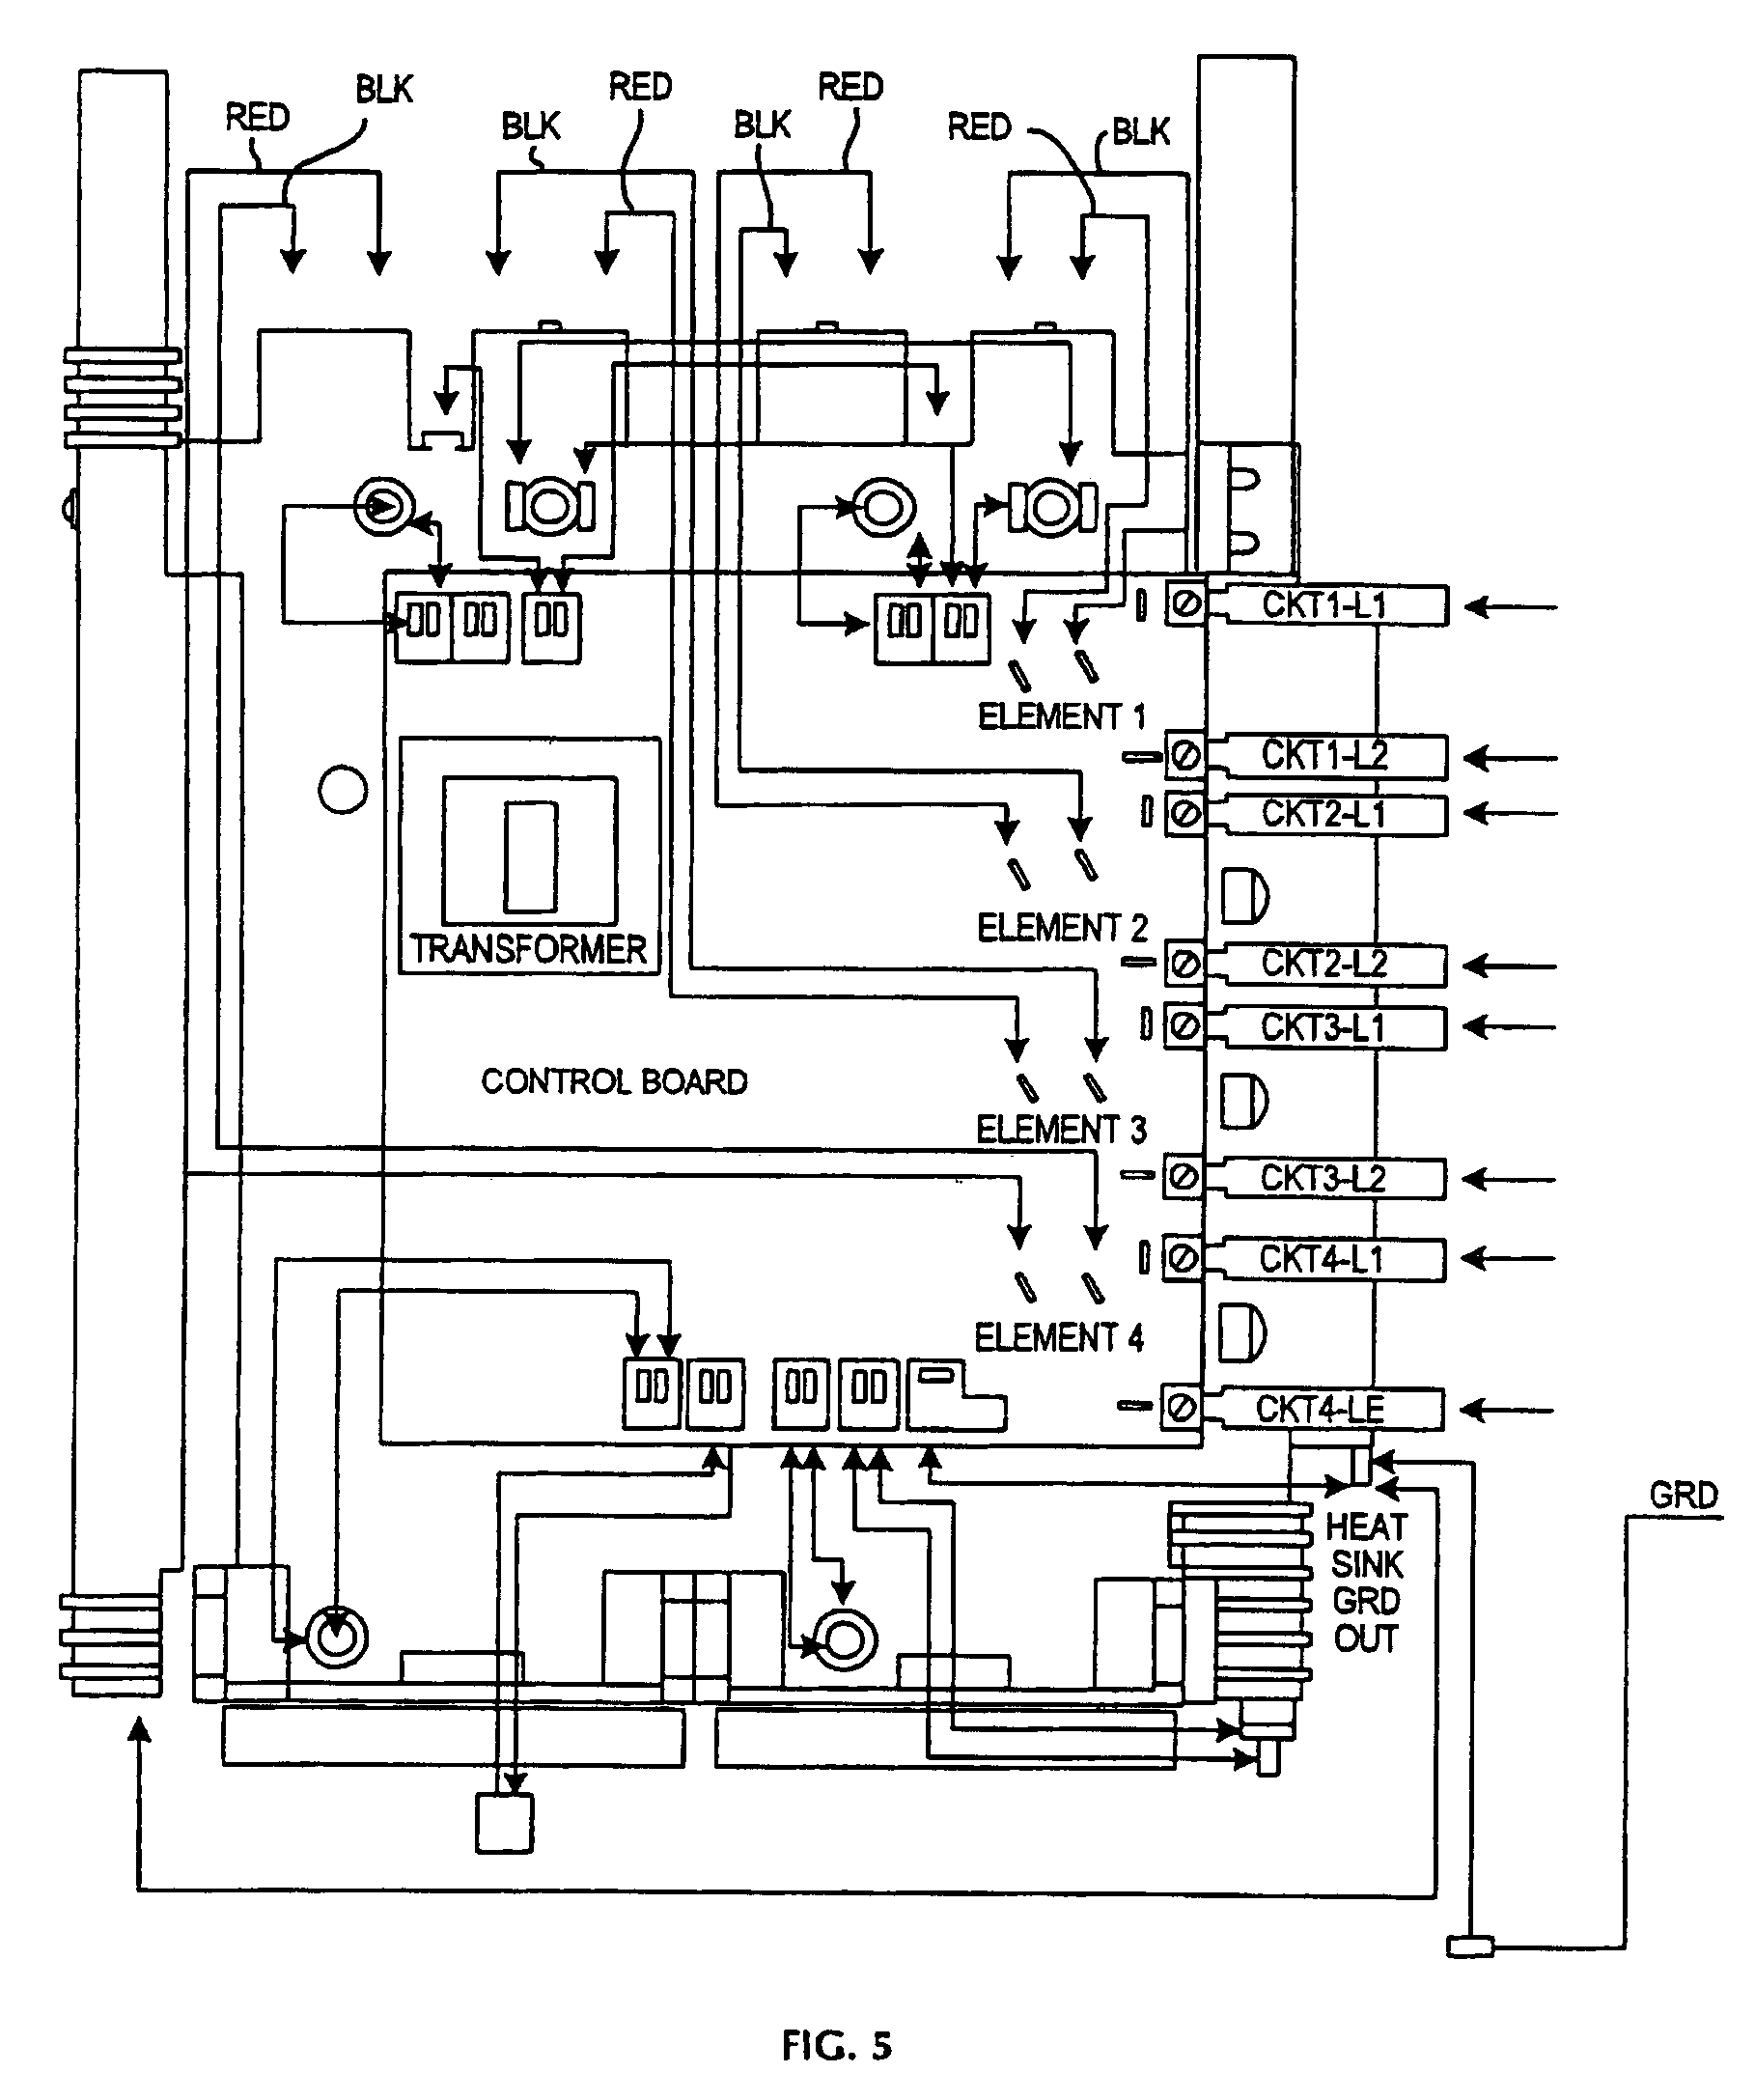 forced hot air furnace wiring diagram